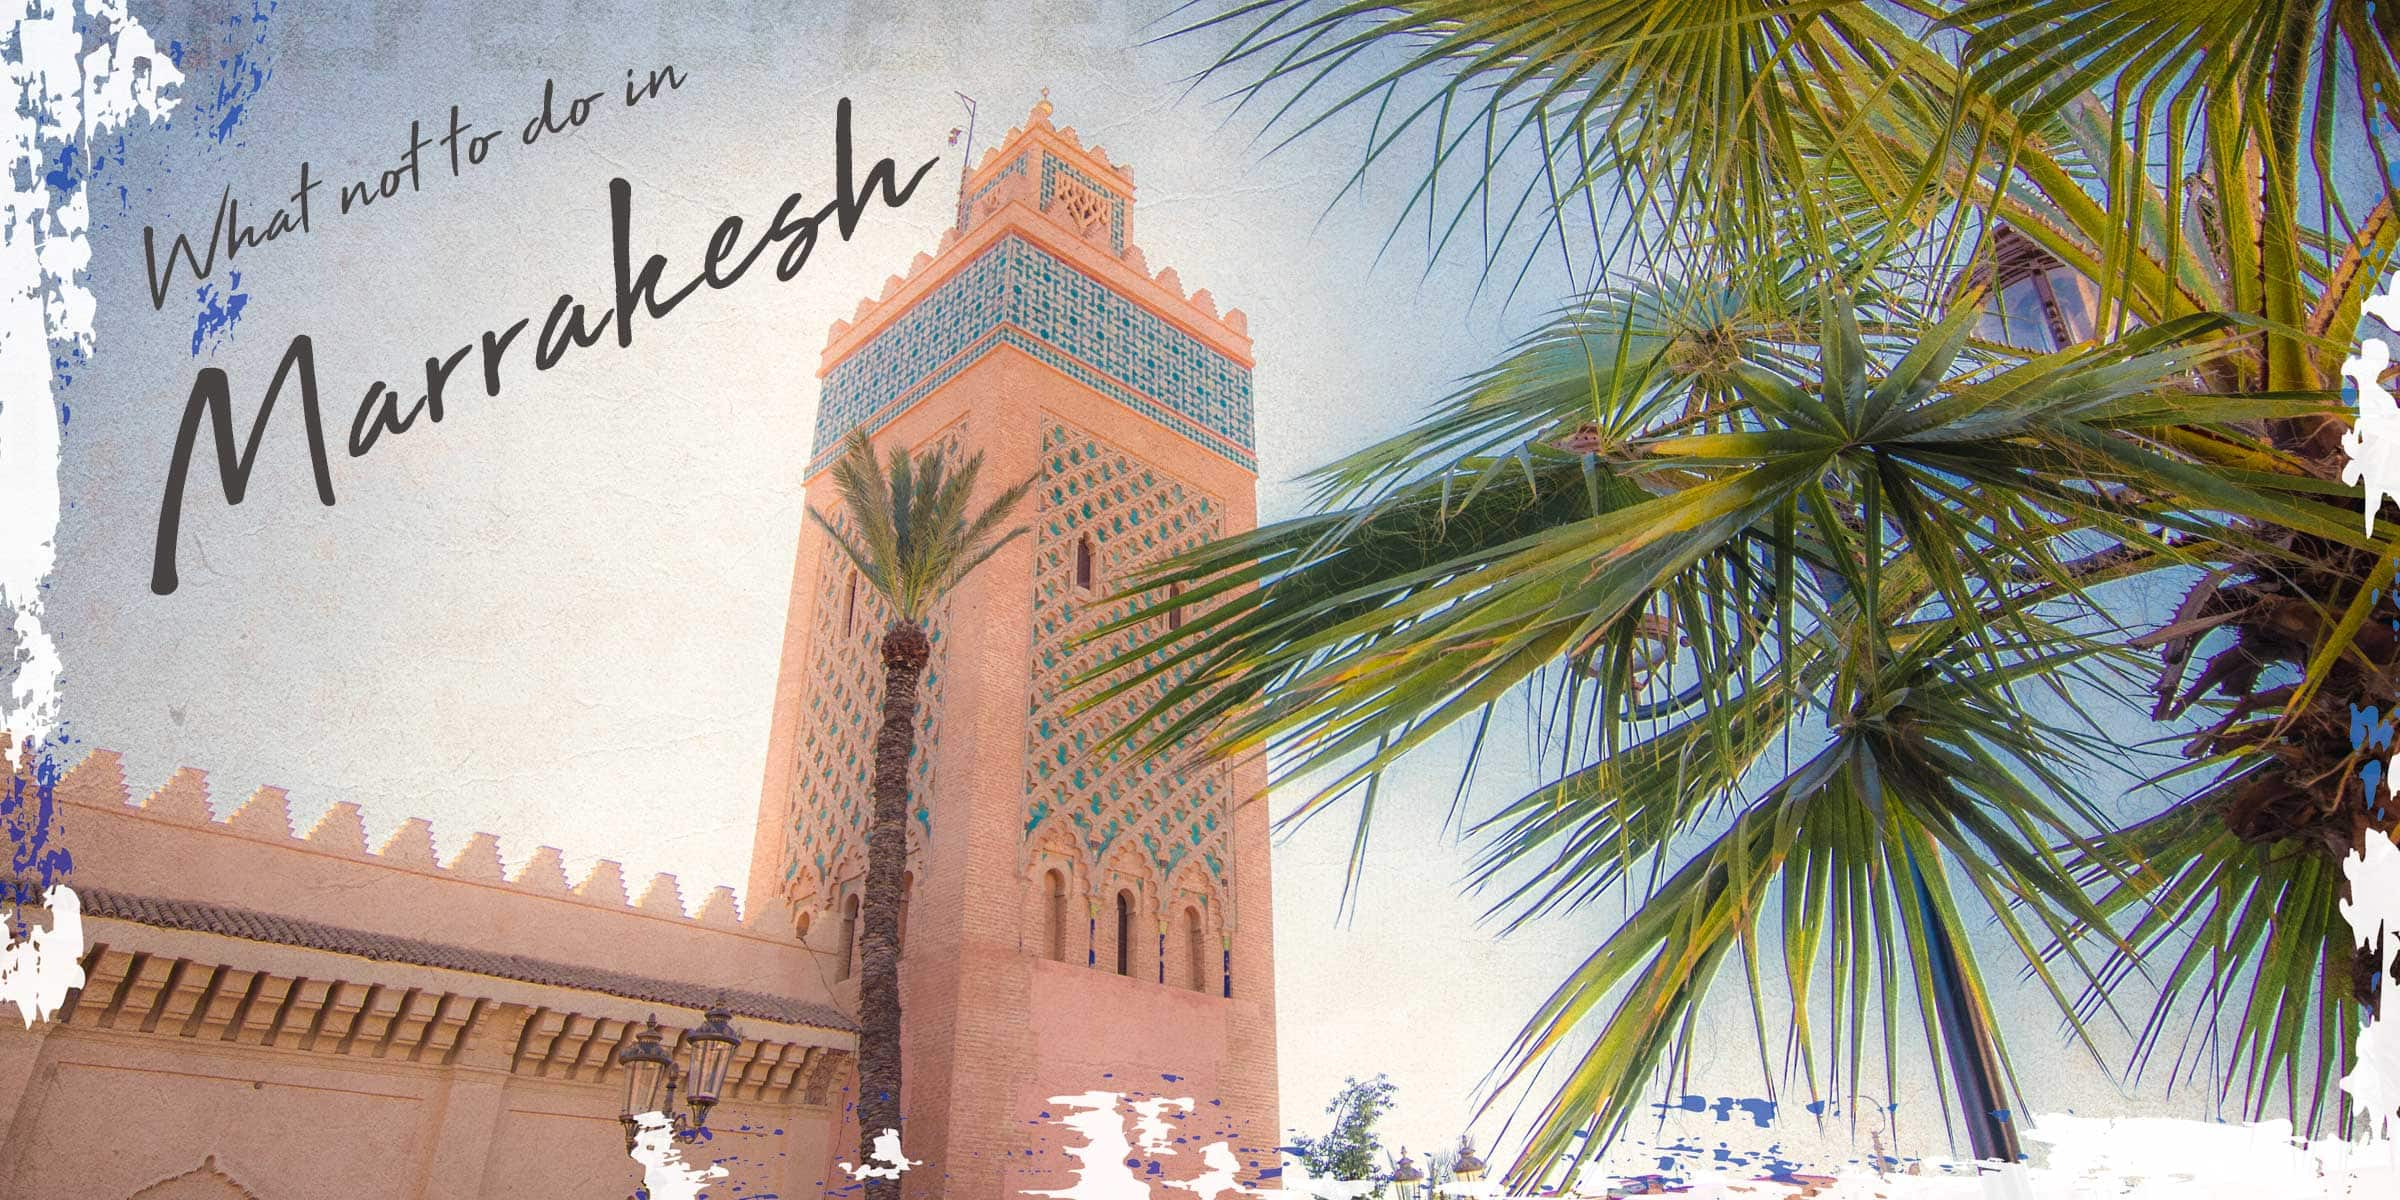 What not to do in Marrakesh cover card